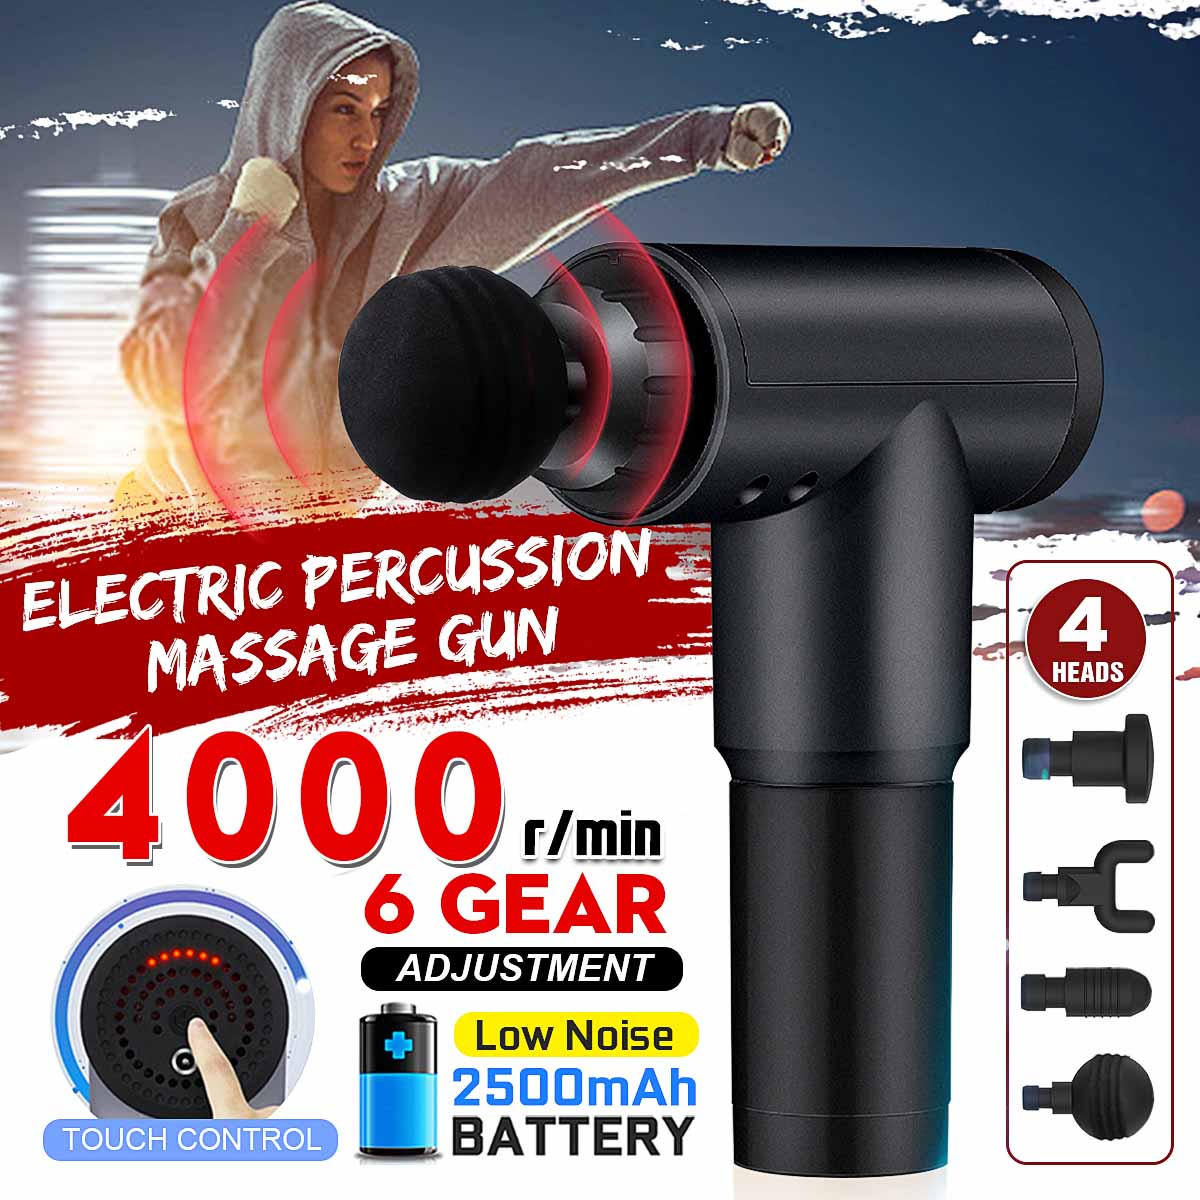 4000r/min Therapy Massage Guns 6 Gears Muscle Massager Pain Sport Massage Machine Relax Body Slimming Relief With 4 Heads